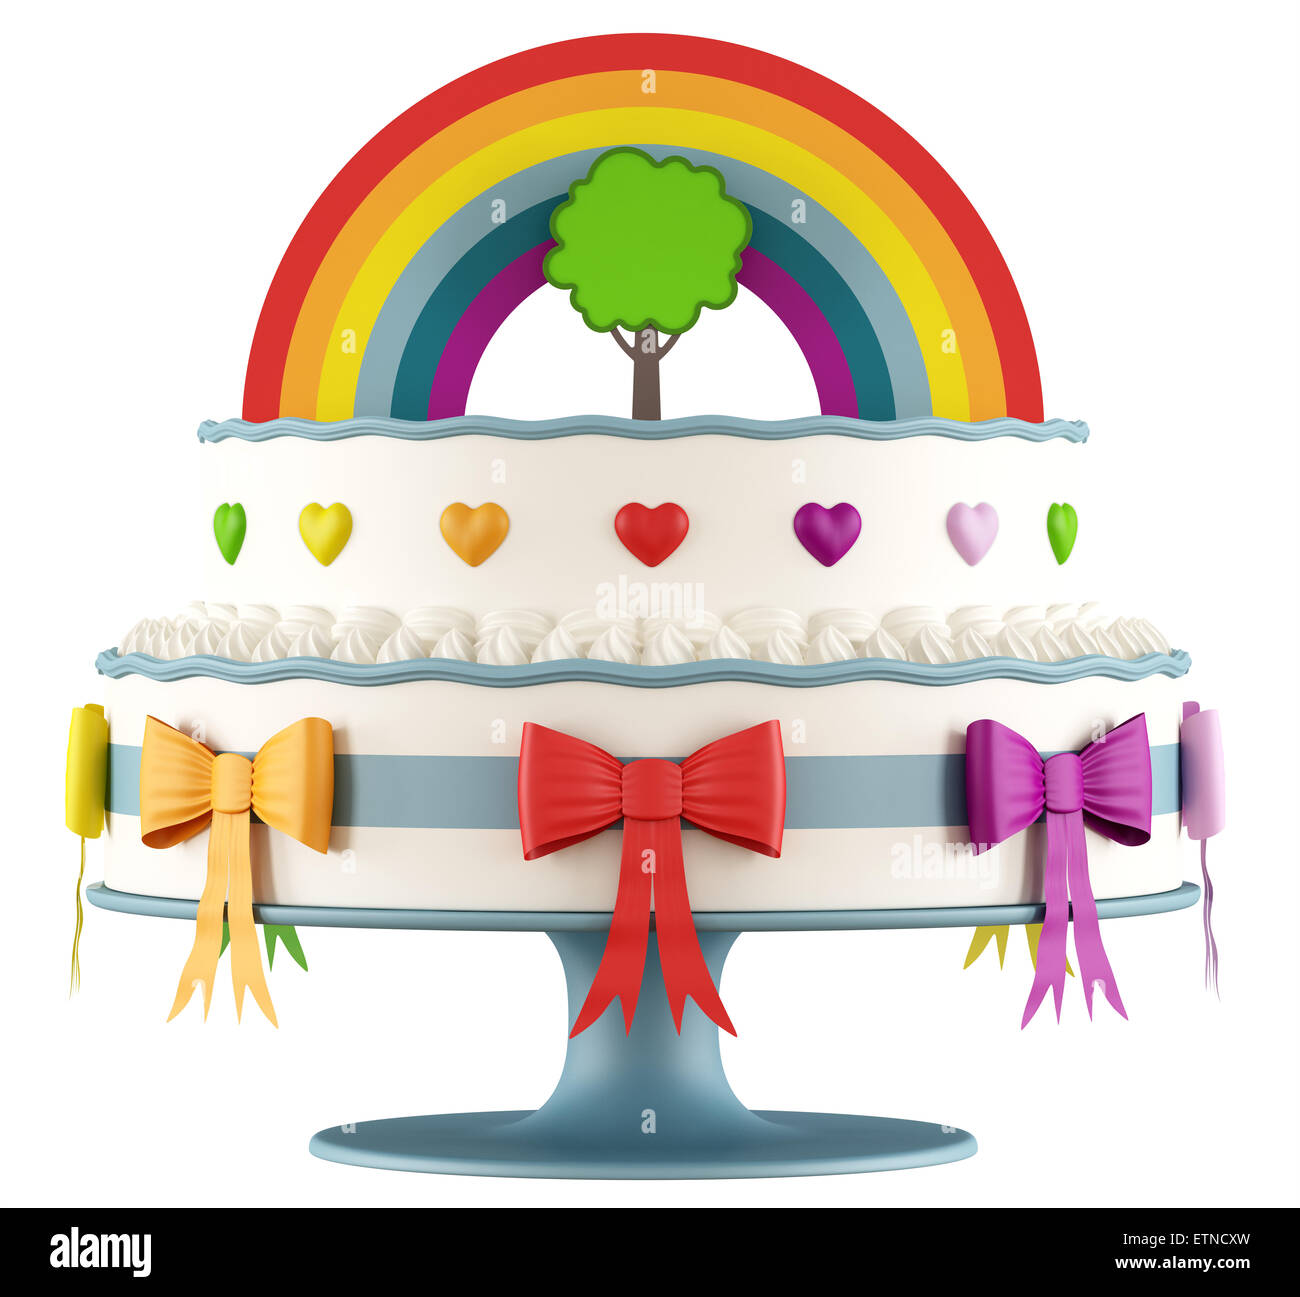 Birthday cake for children with rainbow,tree,hearts and bow - 3D Rendering - Stock Image